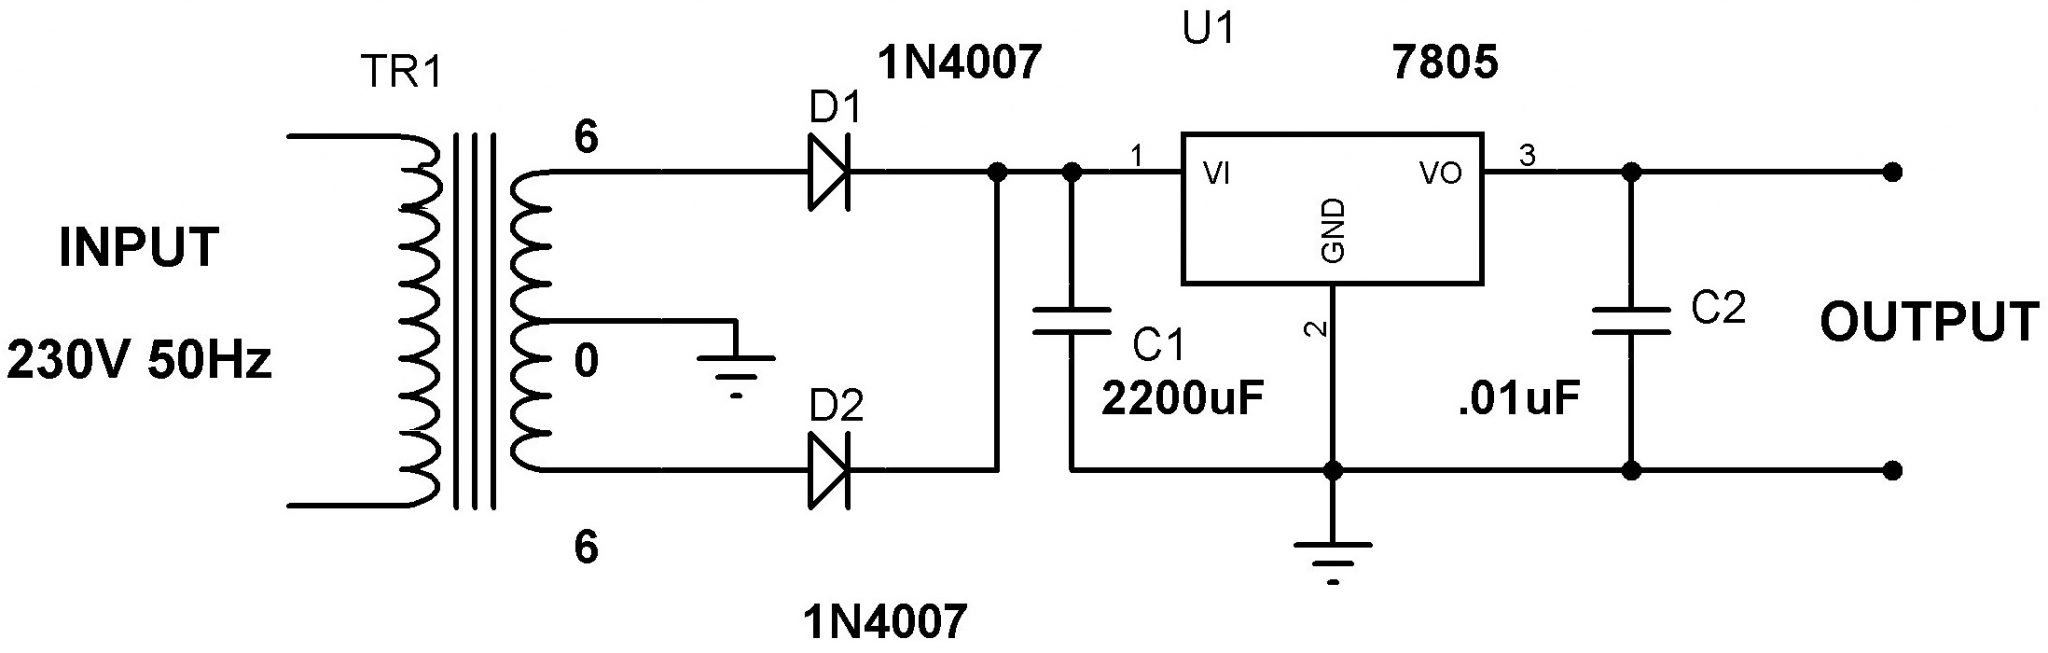 5v Power Supply Using 7805 Voltage Regulator With Design The Circuit Diagram